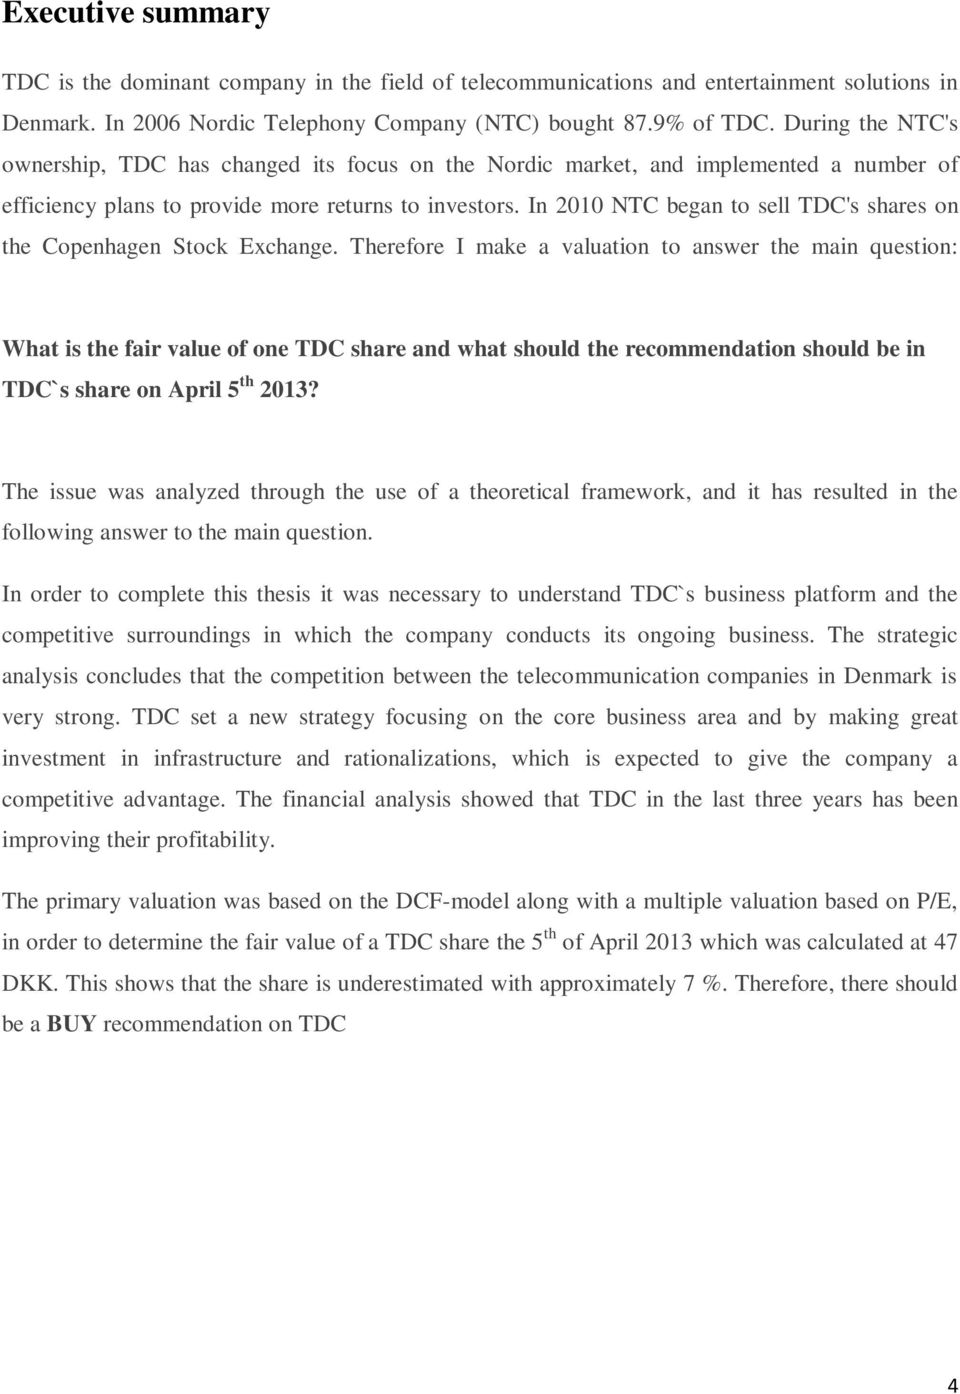 In 2010 NTC began to sell TDC's shares on the Copenhagen Stock Exchange.